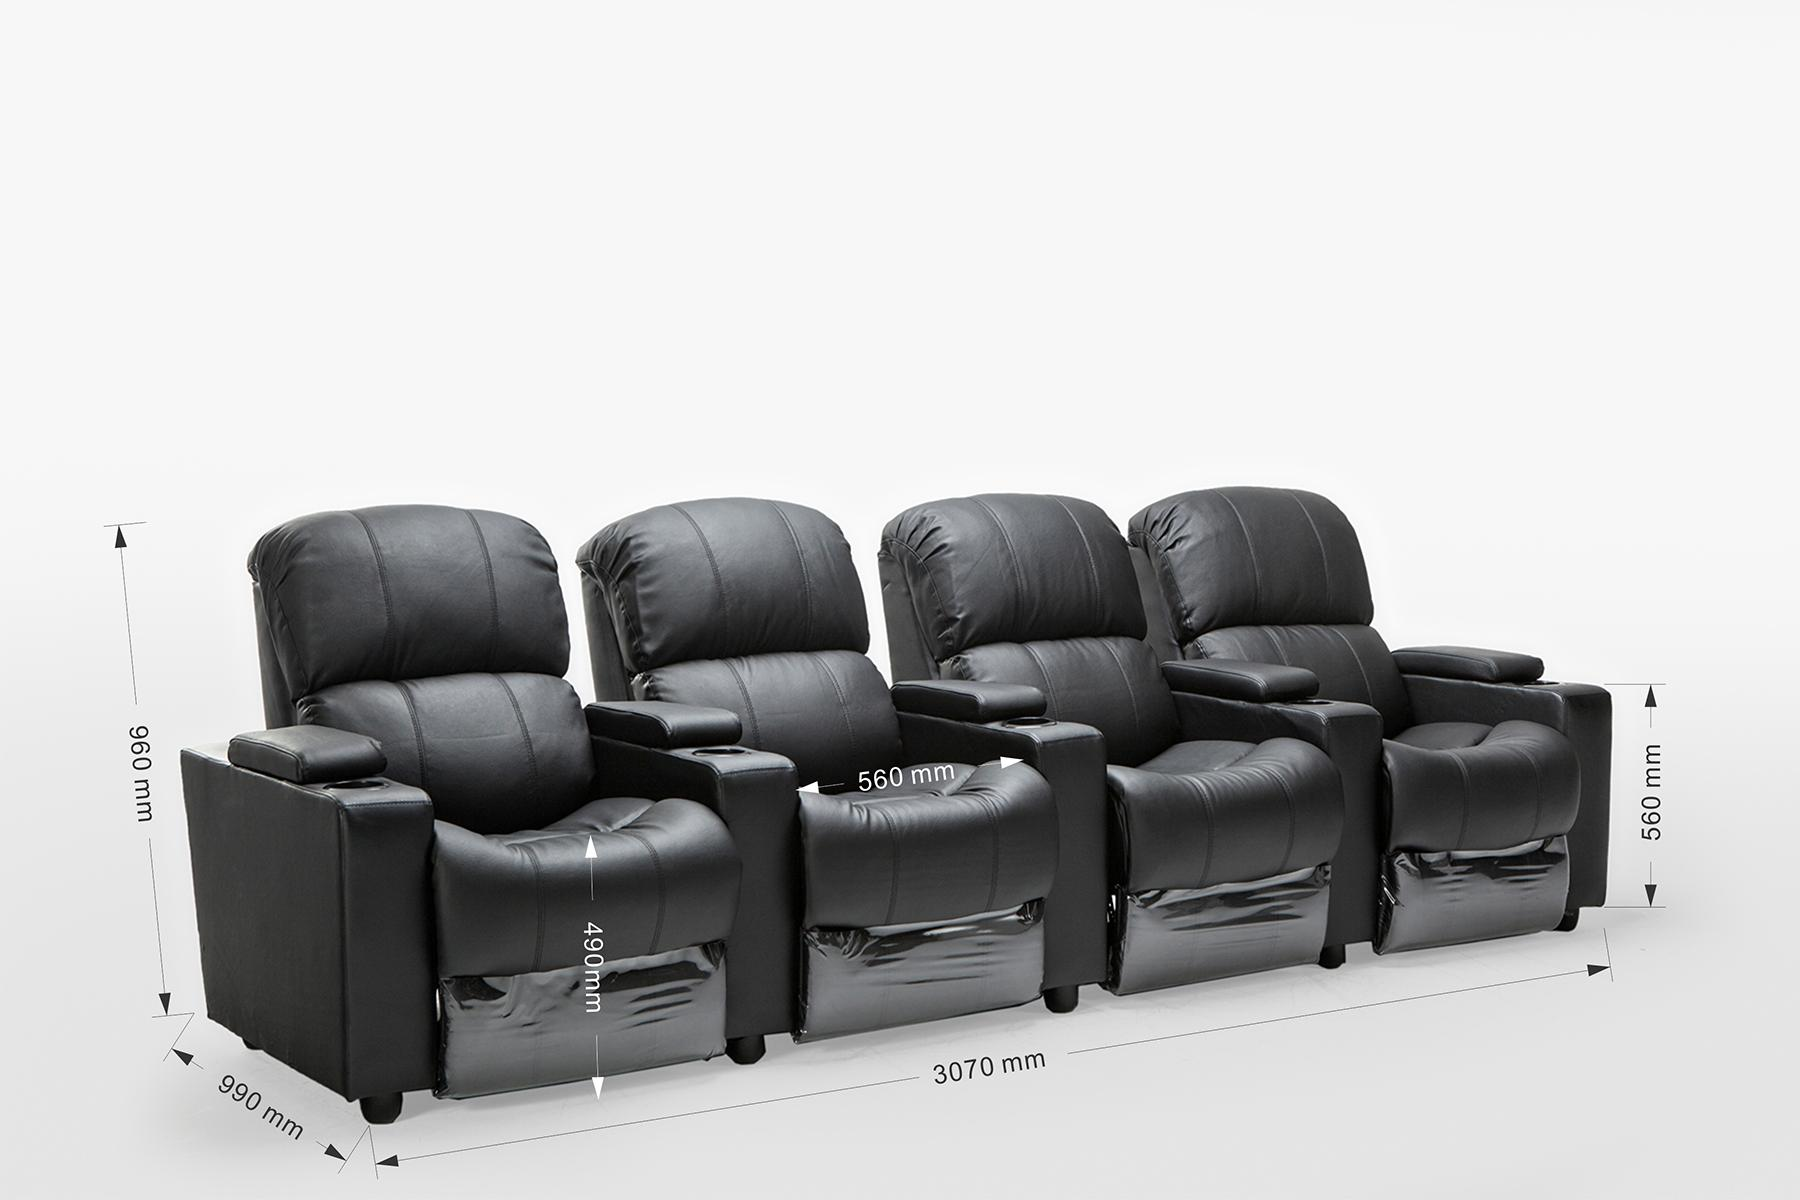 Sophie Leather 4 Seater Home Theatre Recliner Sofa Lounge With Cup Holders  | EBay